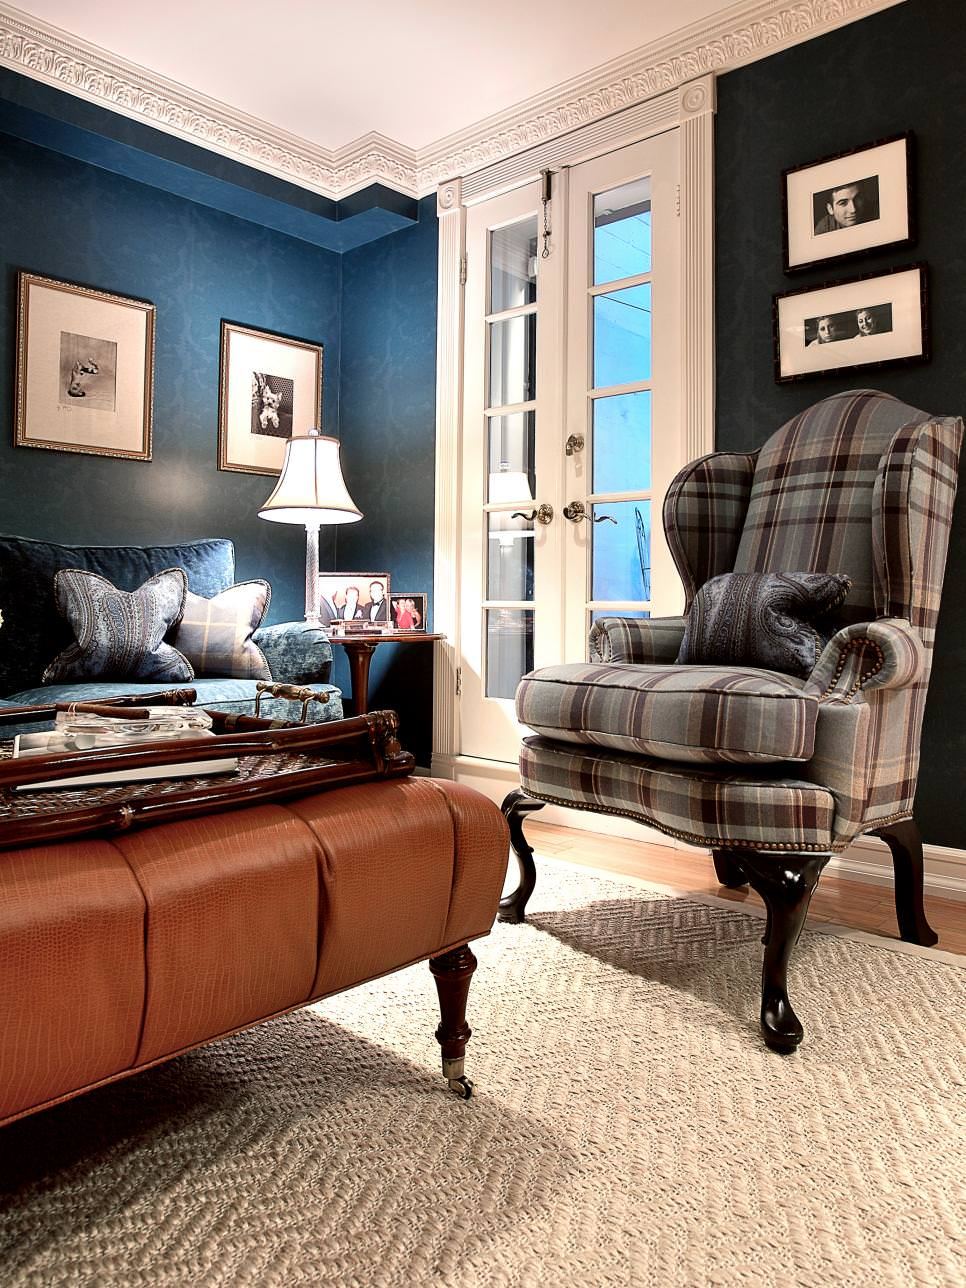 20+ Blue And Brown Living Room Designs, Decorating Ideas. Neutral Color For Living Room. Sofa Designs For Small Living Rooms. Charcoal Grey Living Room Furniture. Indoor Privacy Screen Living Room Furniture. Storage Solutions Living Room. Ideas For Small Living Room. Pictures Of Living Rooms With Grey Sofas. Pictures On Living Room Wall